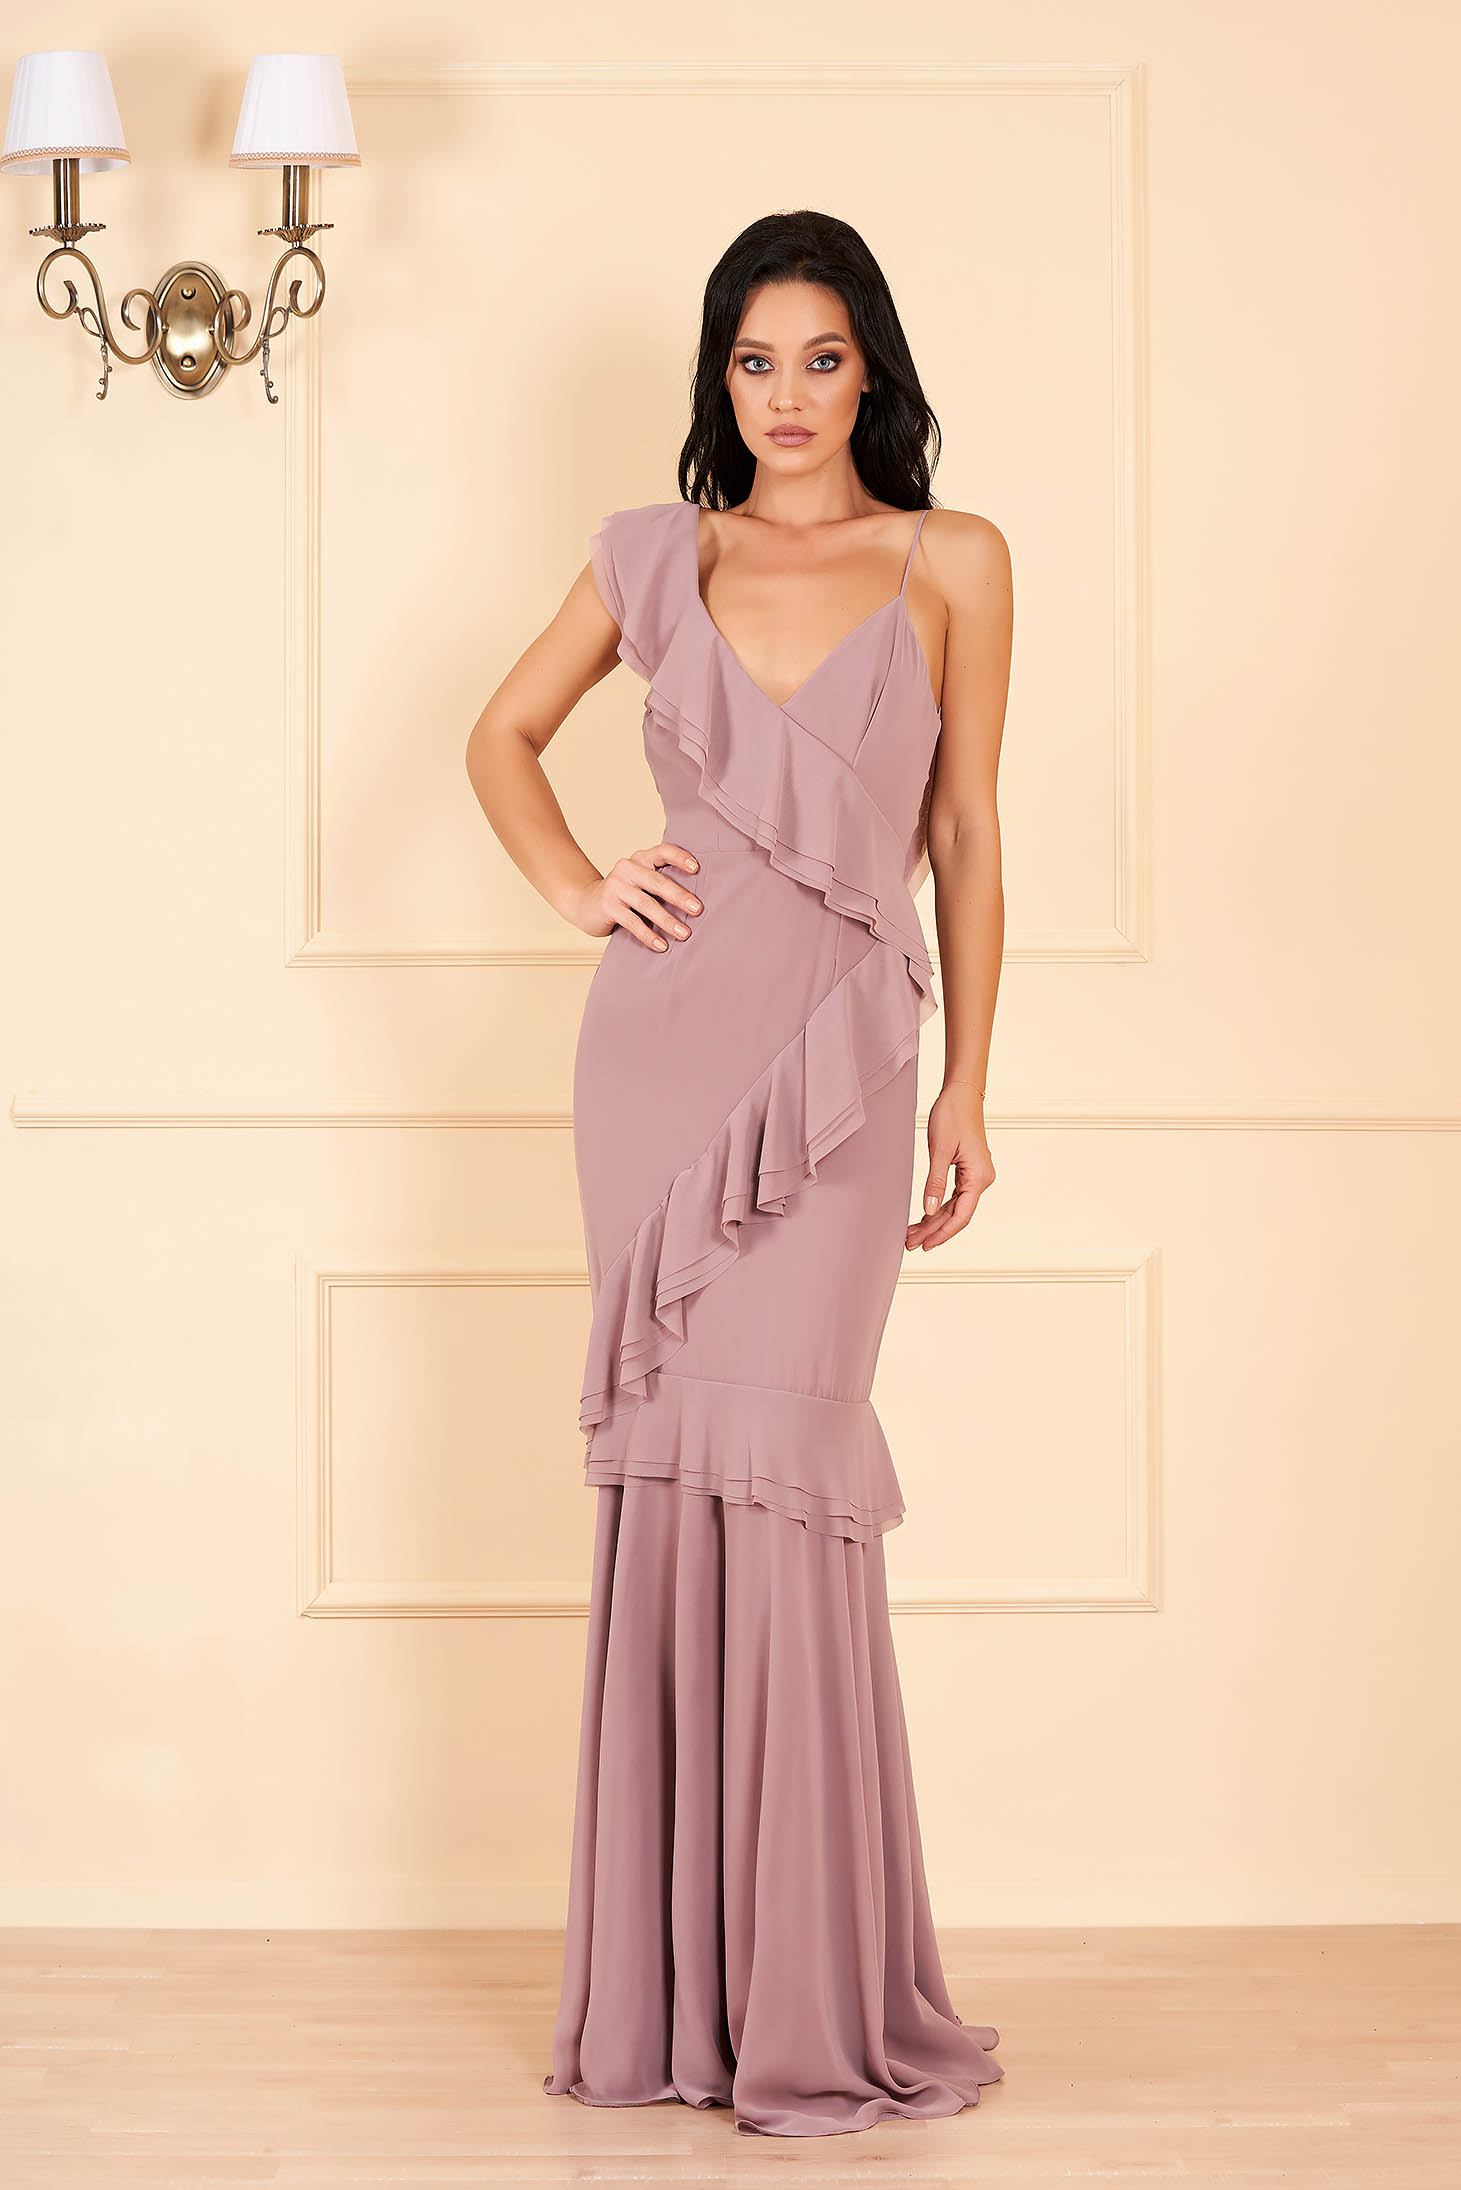 Ana Radu cappuccino dress luxurious long from veil fabric with v-neckline all-over frill dress